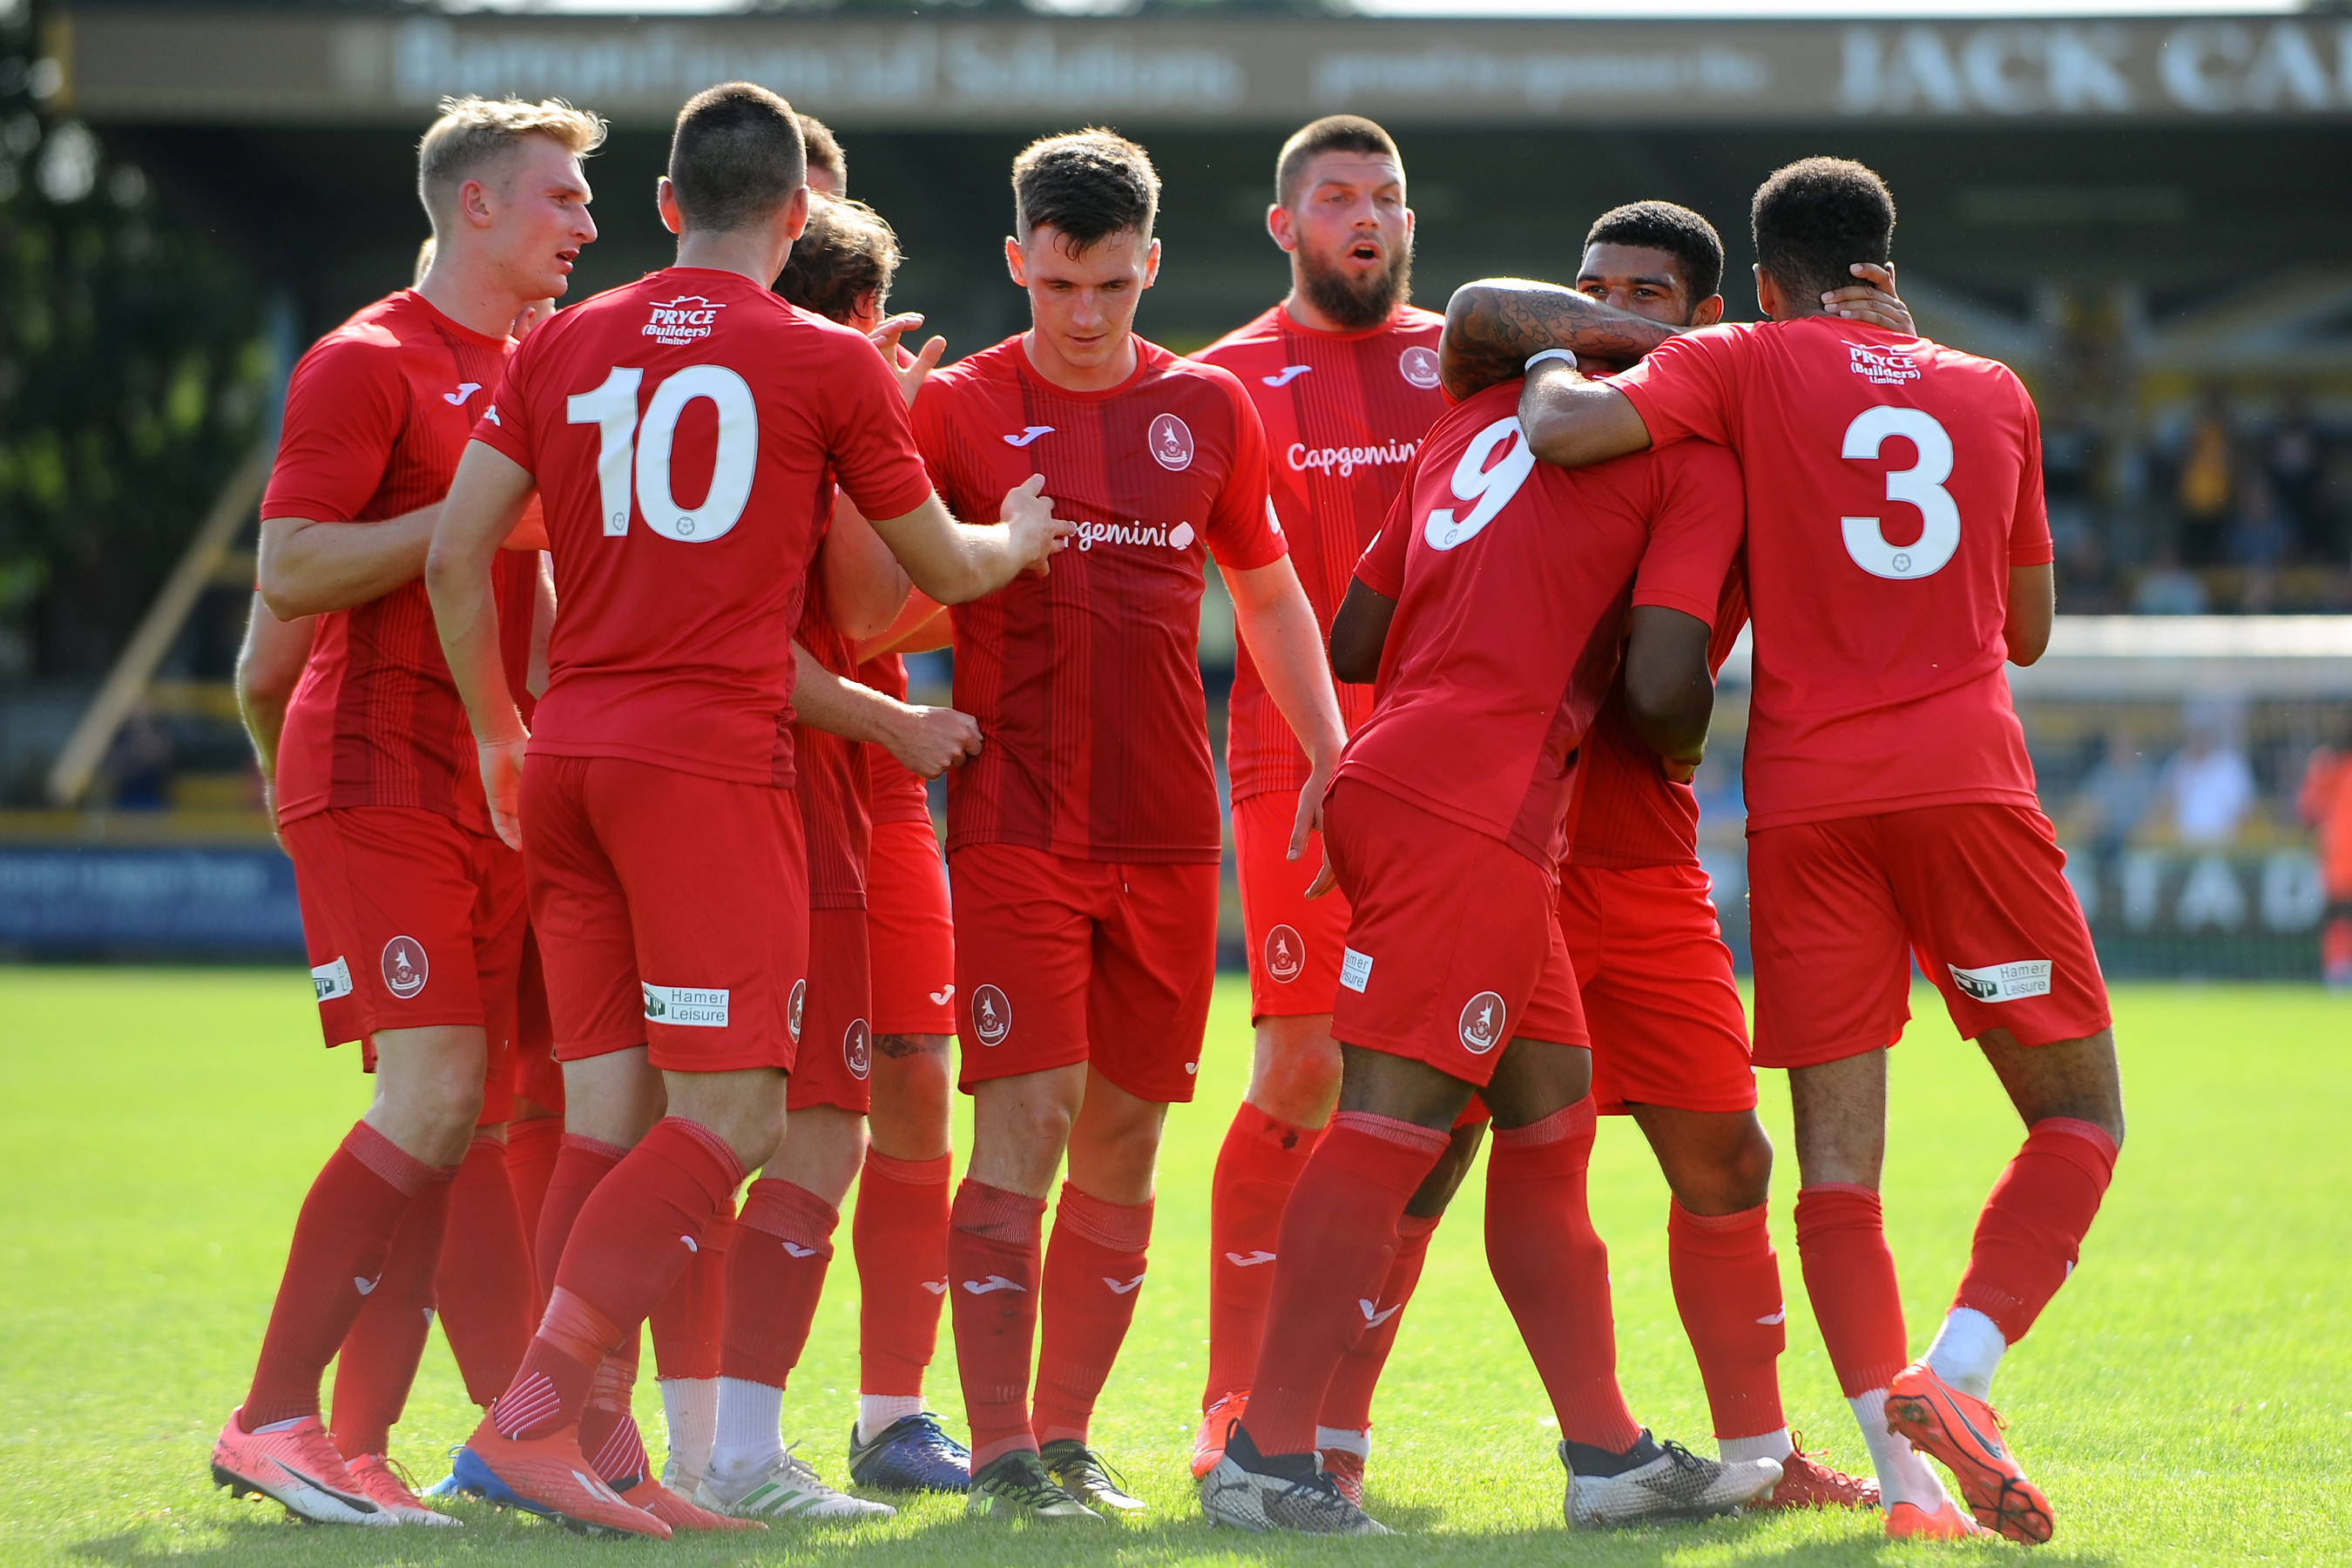 Southport 0 AFC Telford 1 - Report and pictures